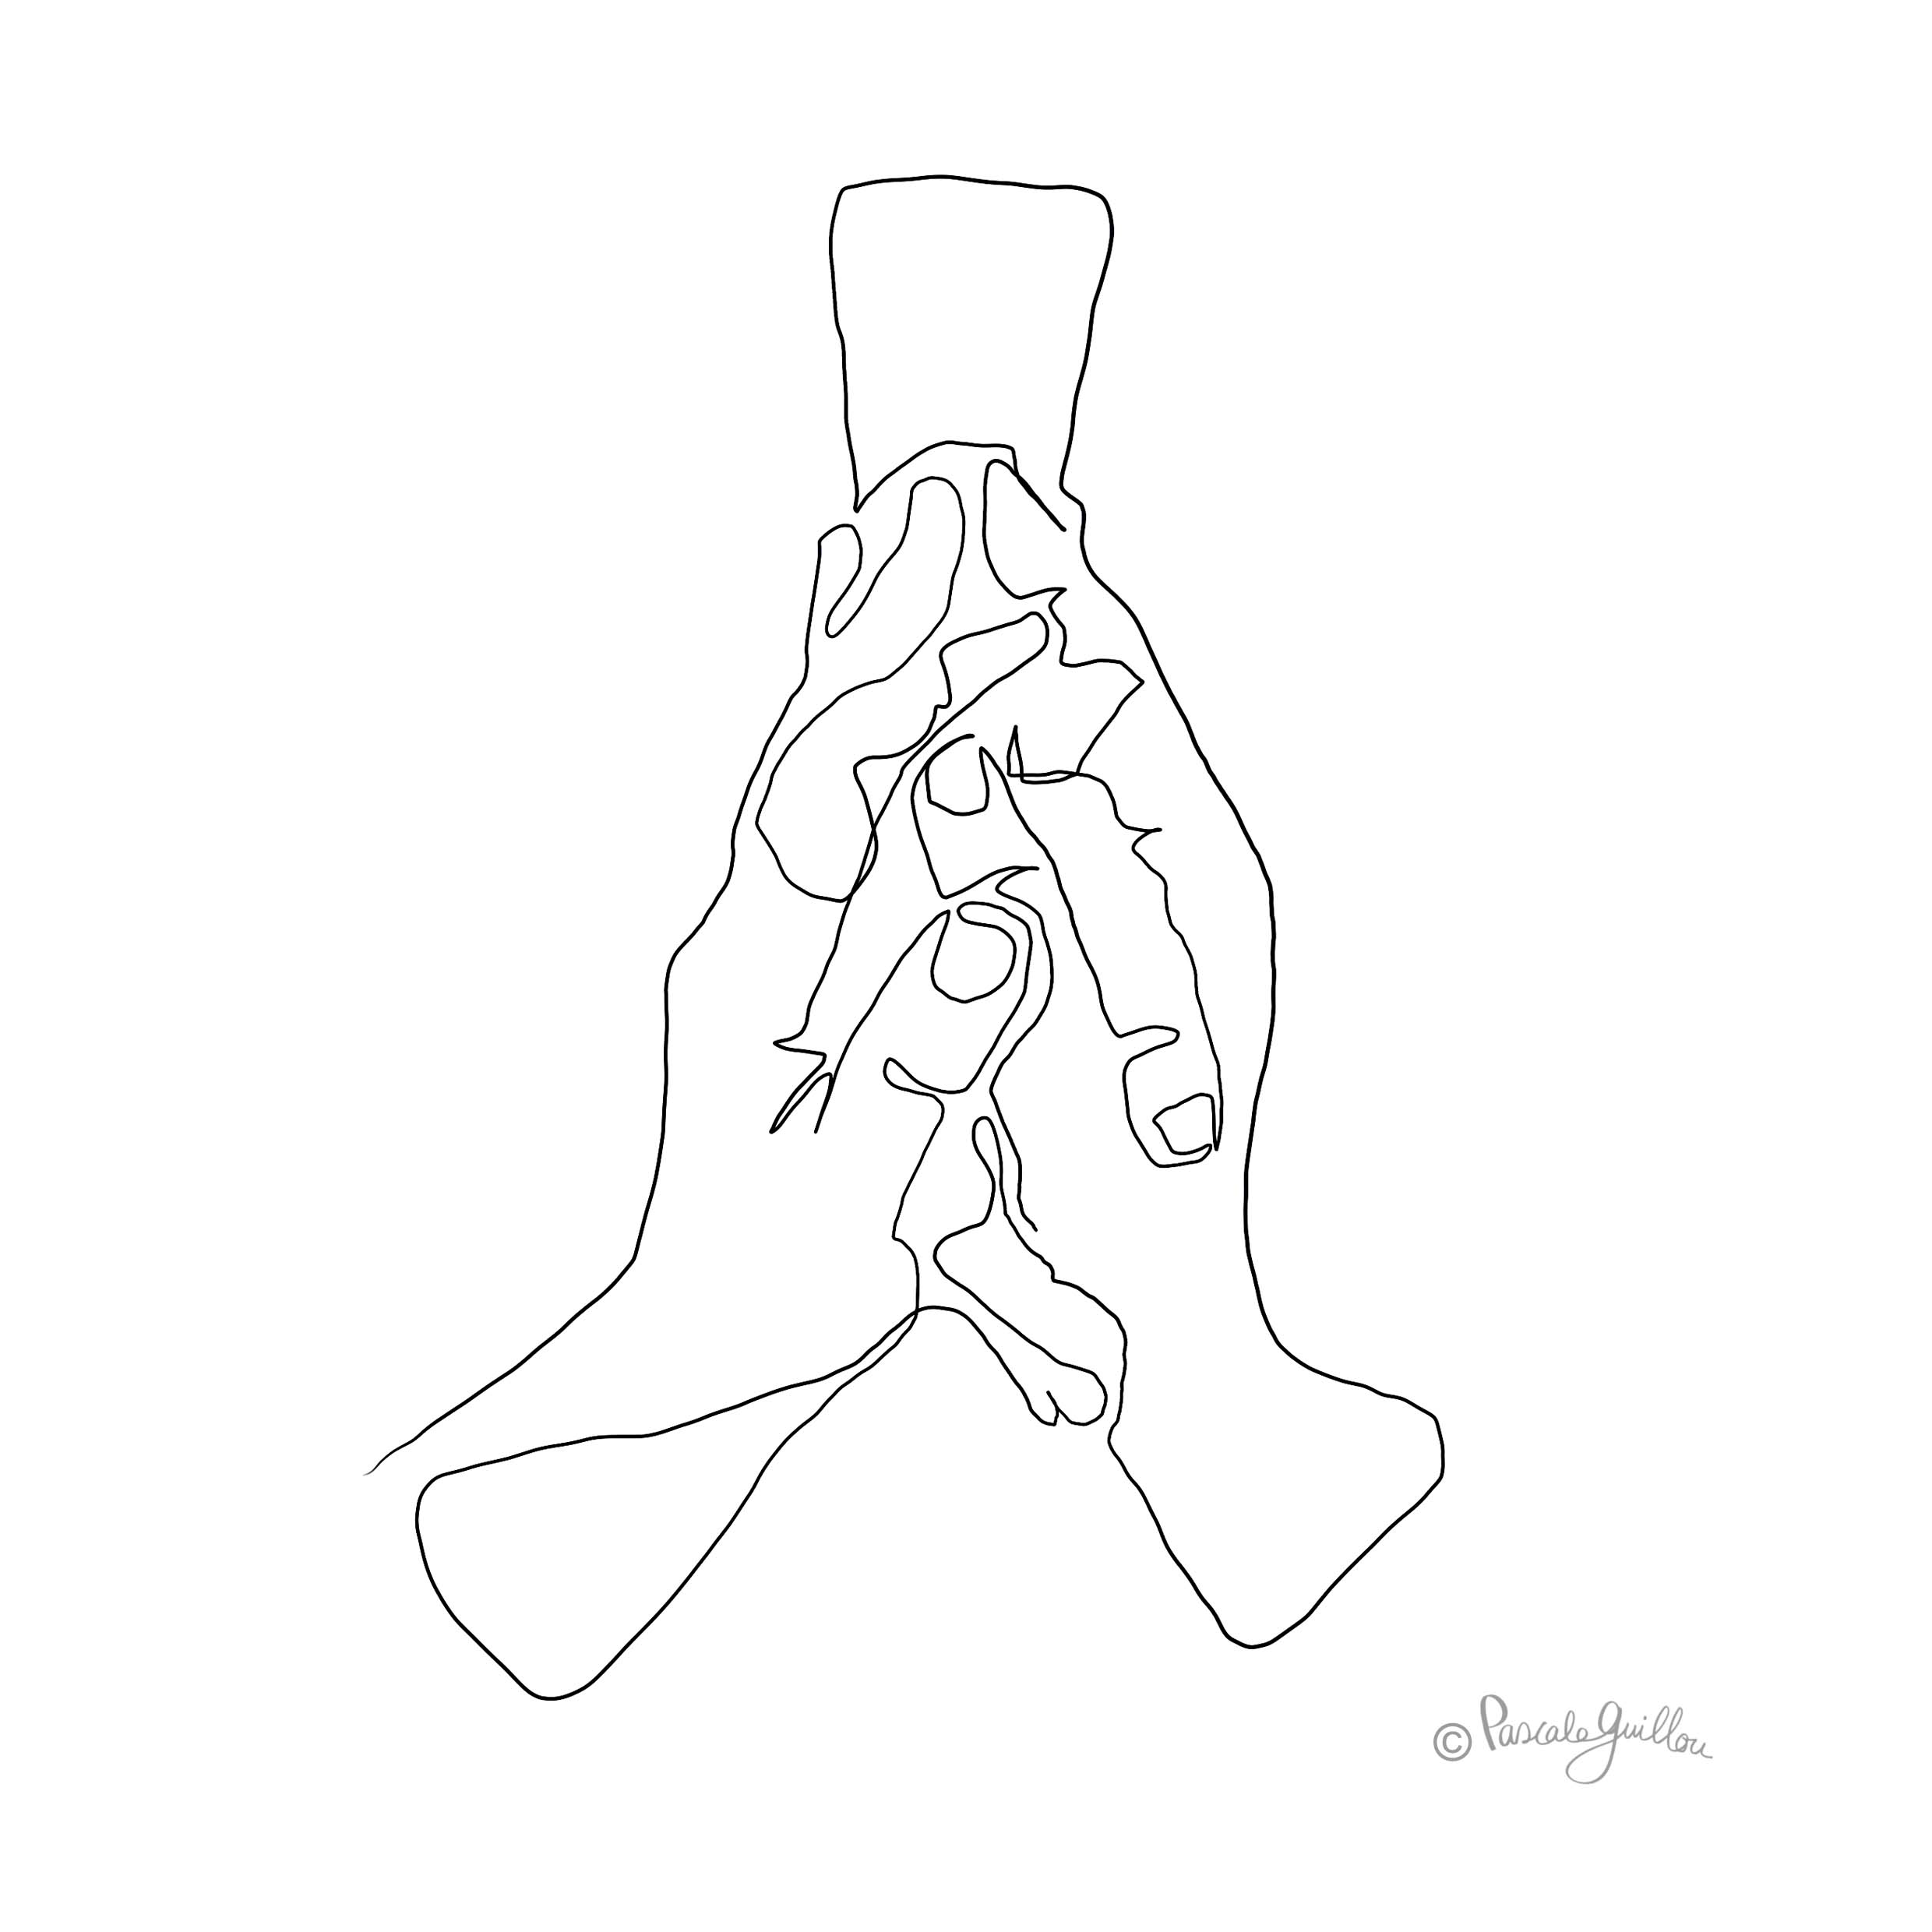 Hand in hand One line Illustration ©Pascale Guillou